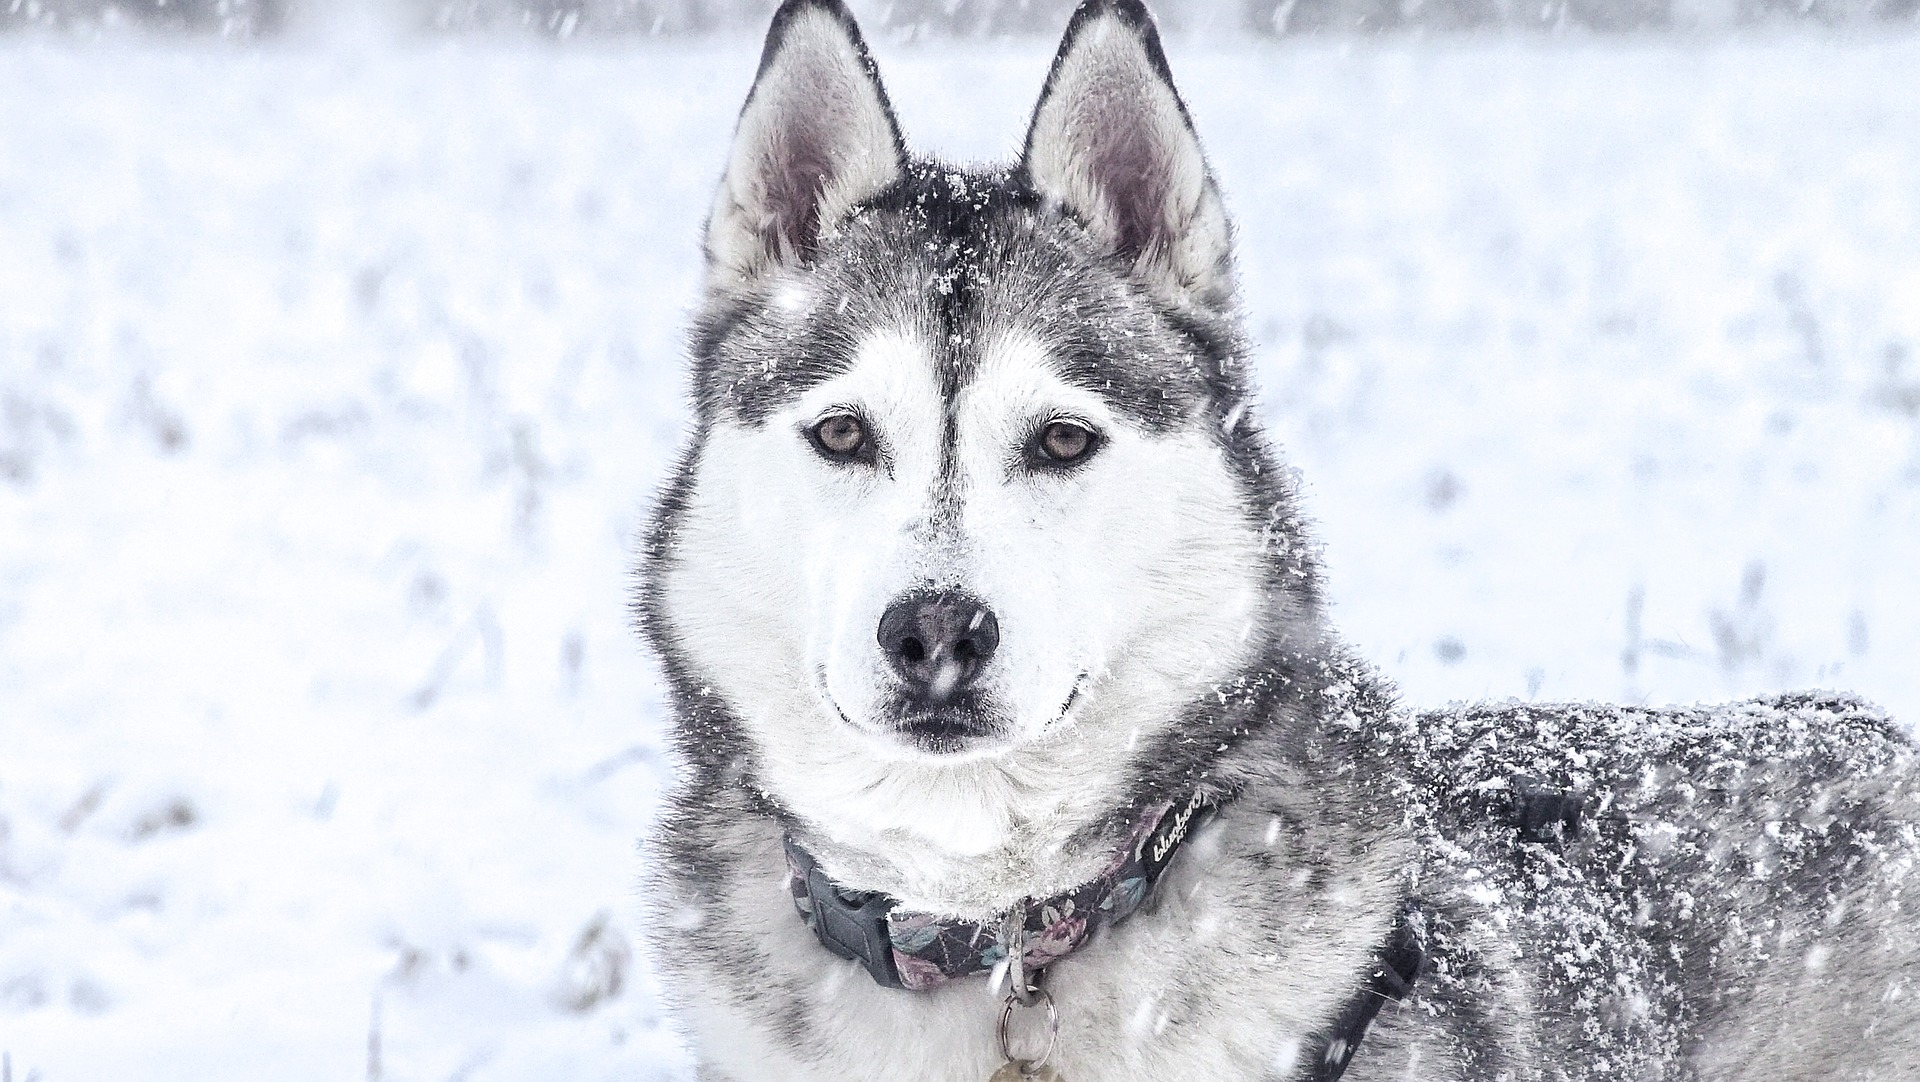 Husky in the snow whilst it's snowing